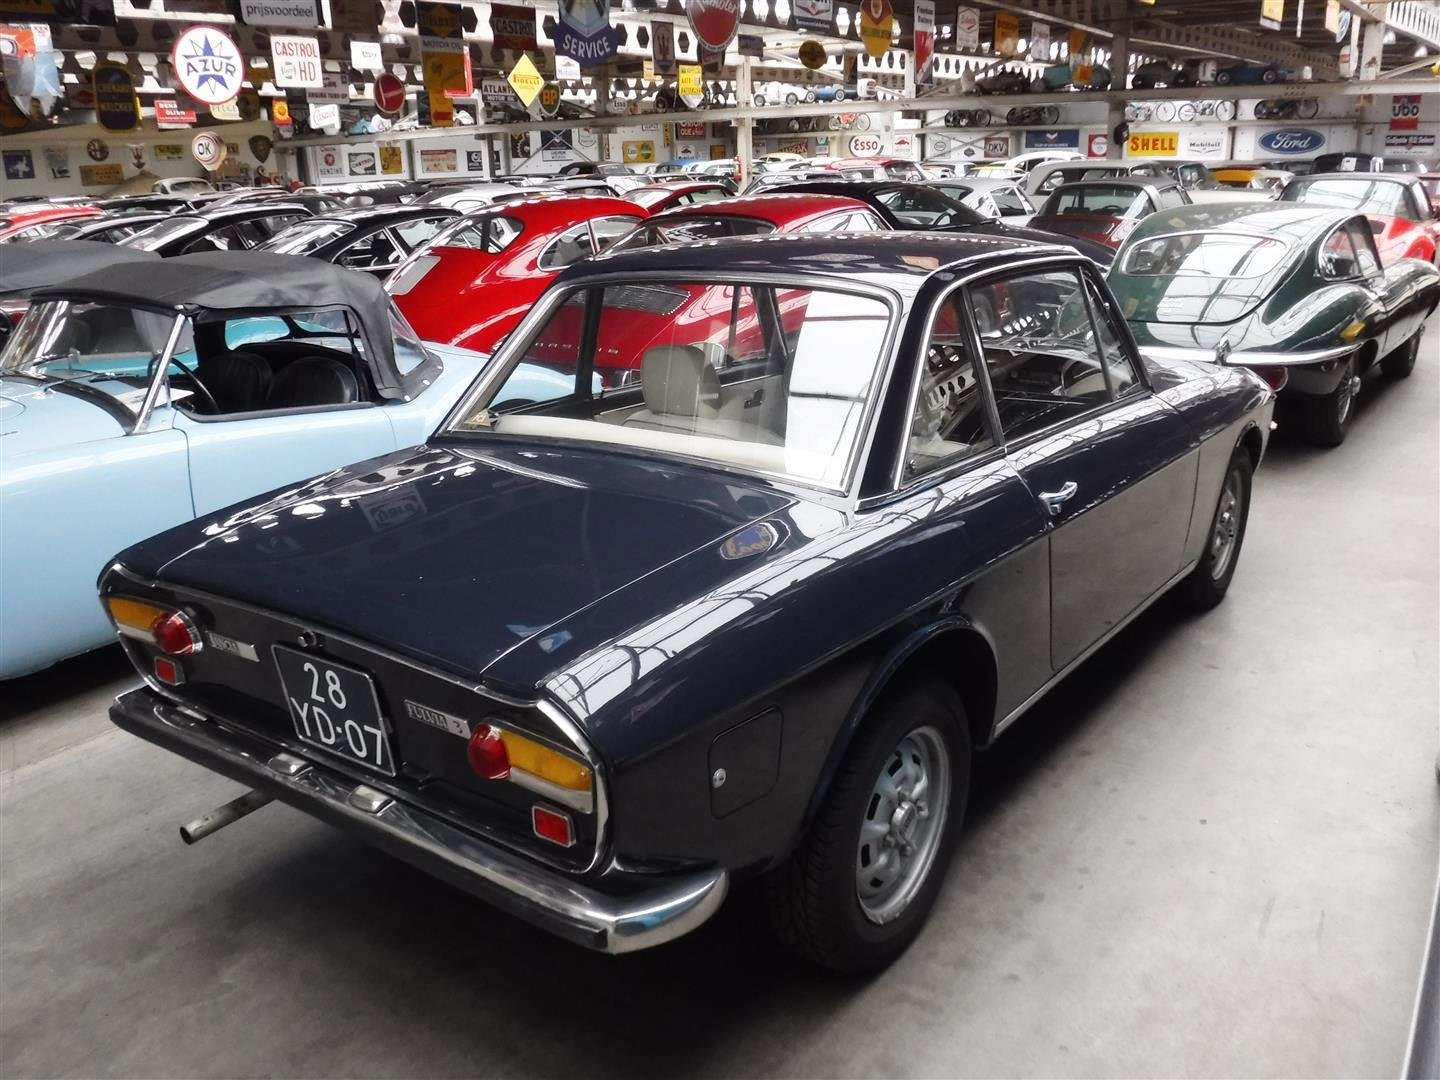 1974 Very nice Lancia Fulvia 1.3 S '74 For Sale (picture 3 of 6)